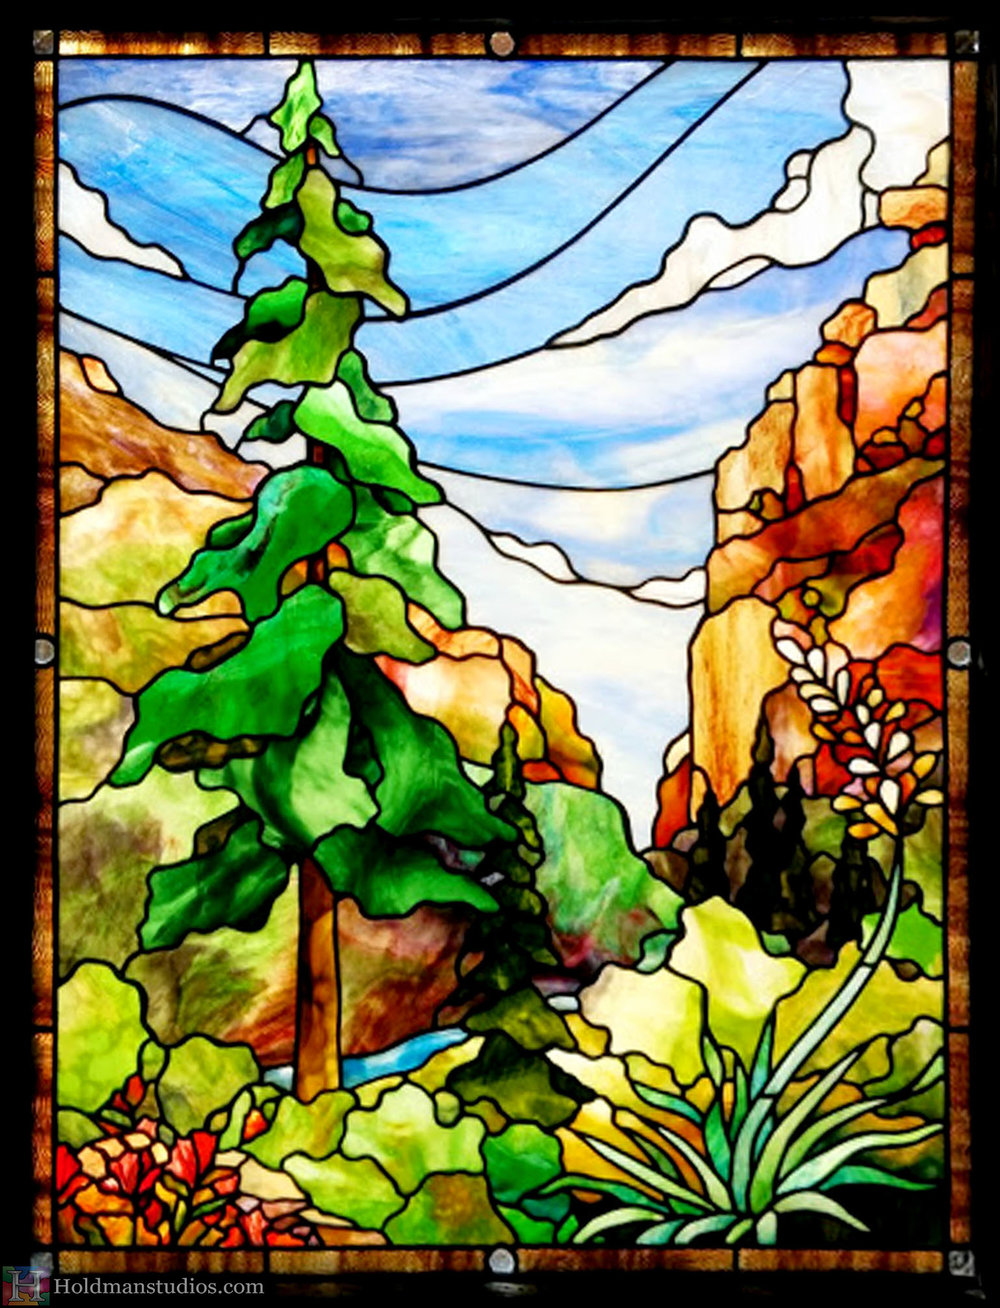 Stained glass front door window of the sky with clouds, mountains, pine trees, flowers, plants, and leaves. Created by artists under the direction of Tom Holdman at Holdman Studios.